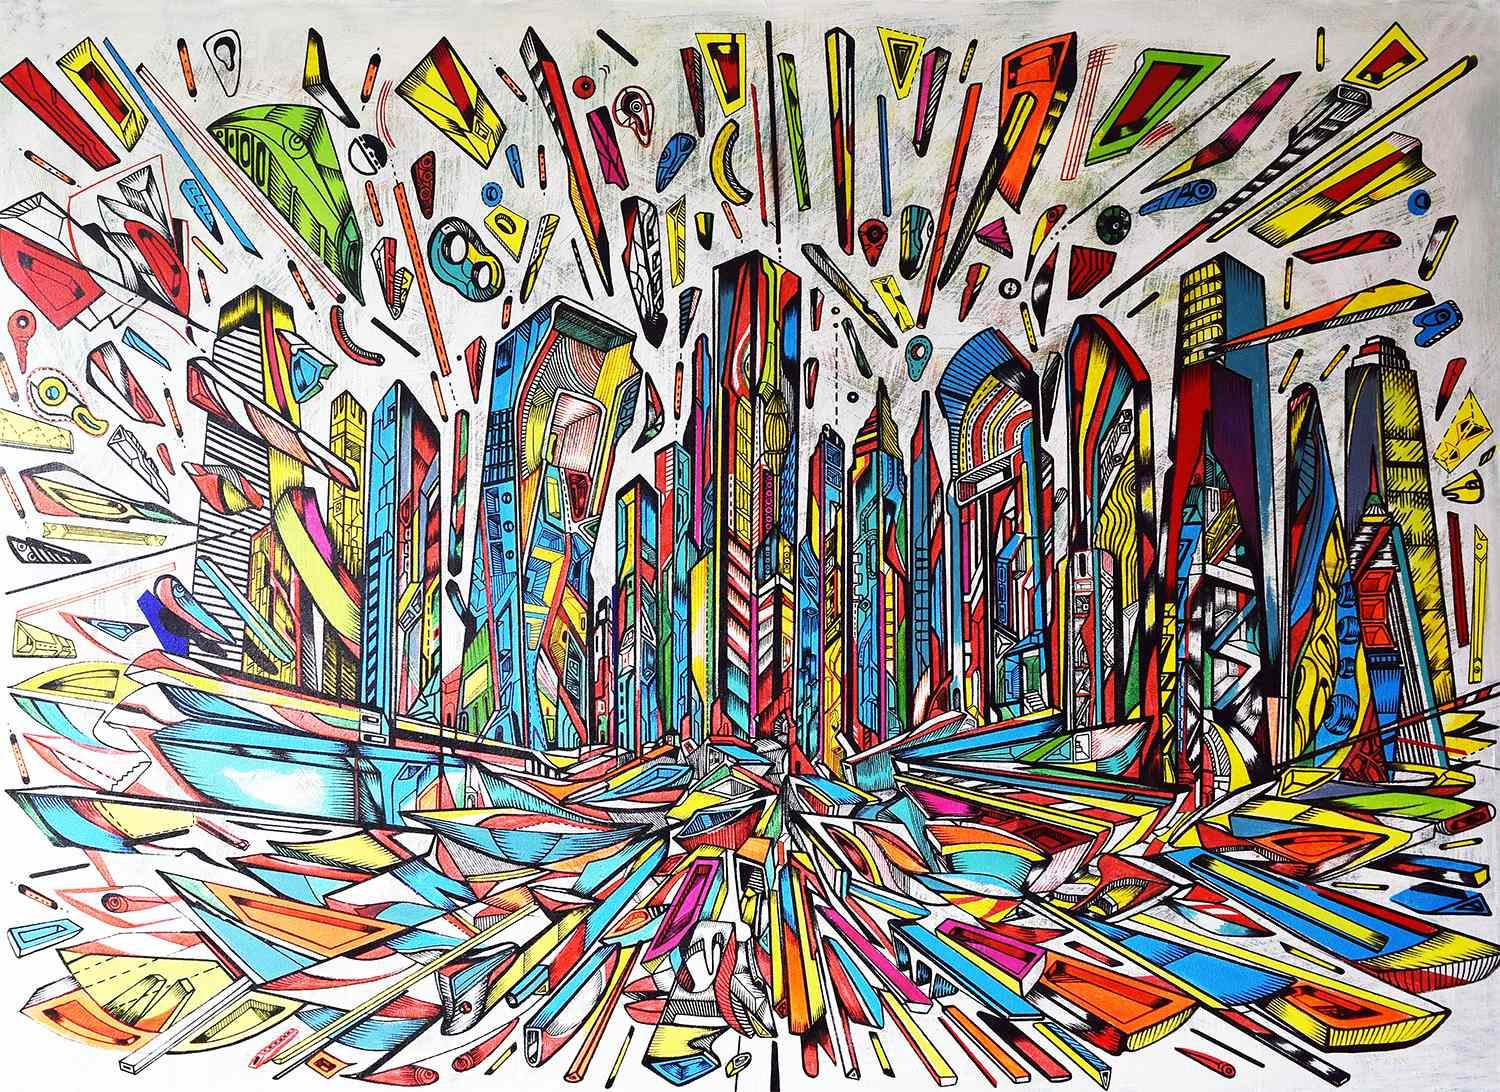 The Flow is a futuristic and abstract city painting by Marko Gavrilovic from City paintings series.